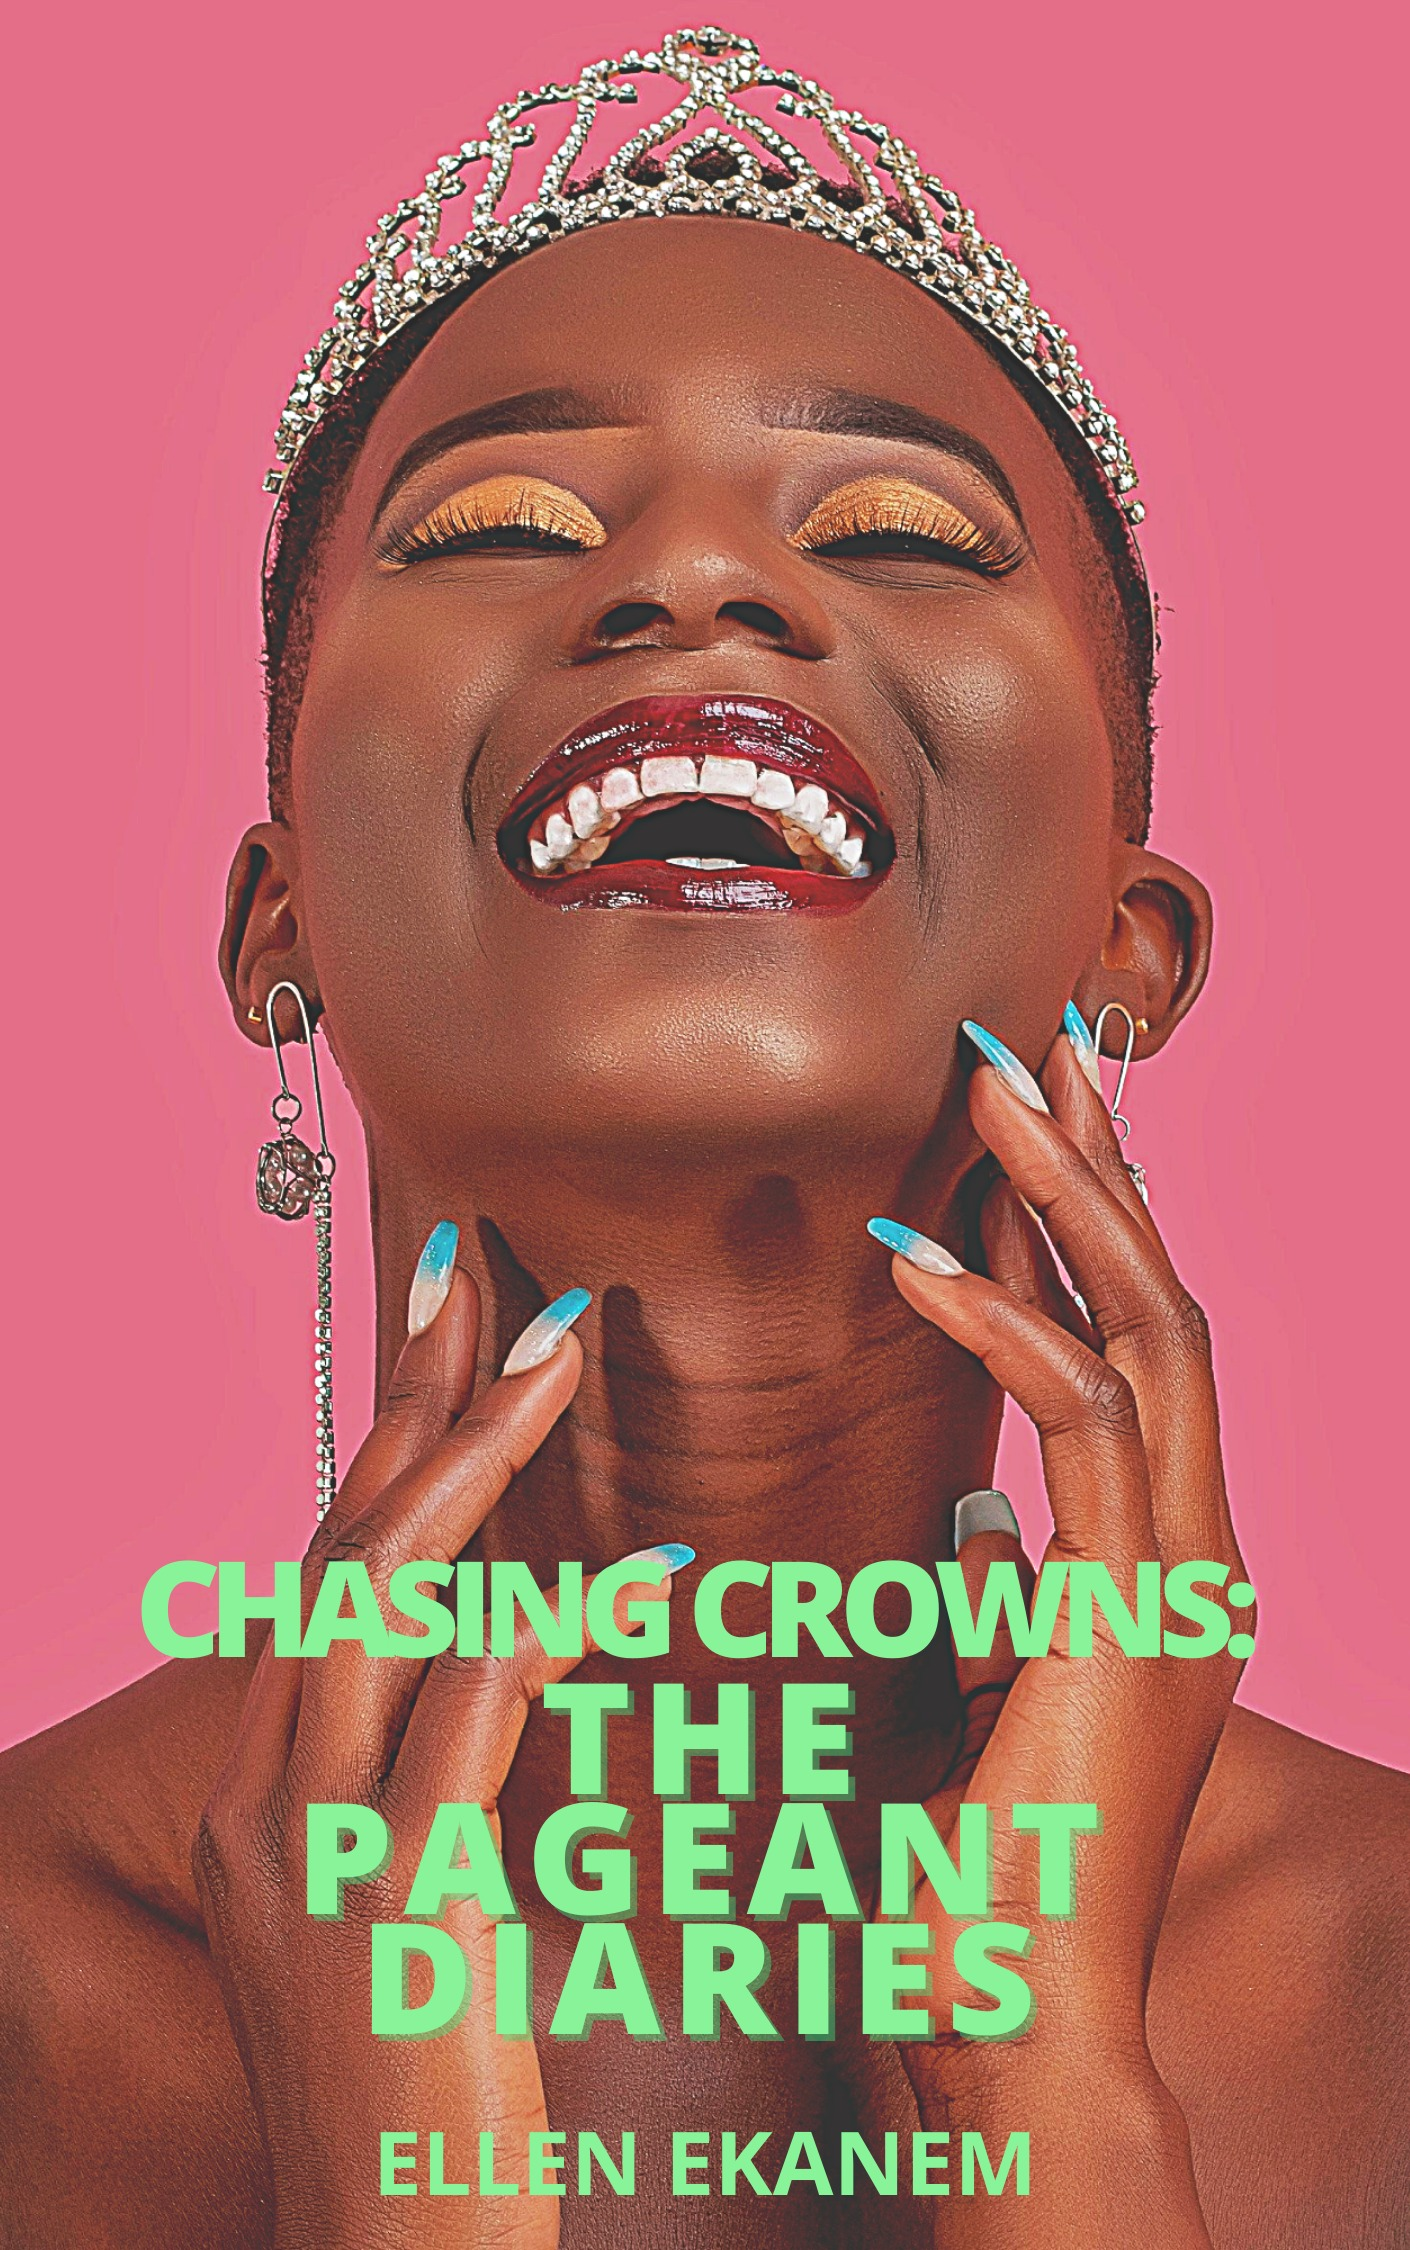 Chasing Crowns: The Pageant Diaries (Teaser)